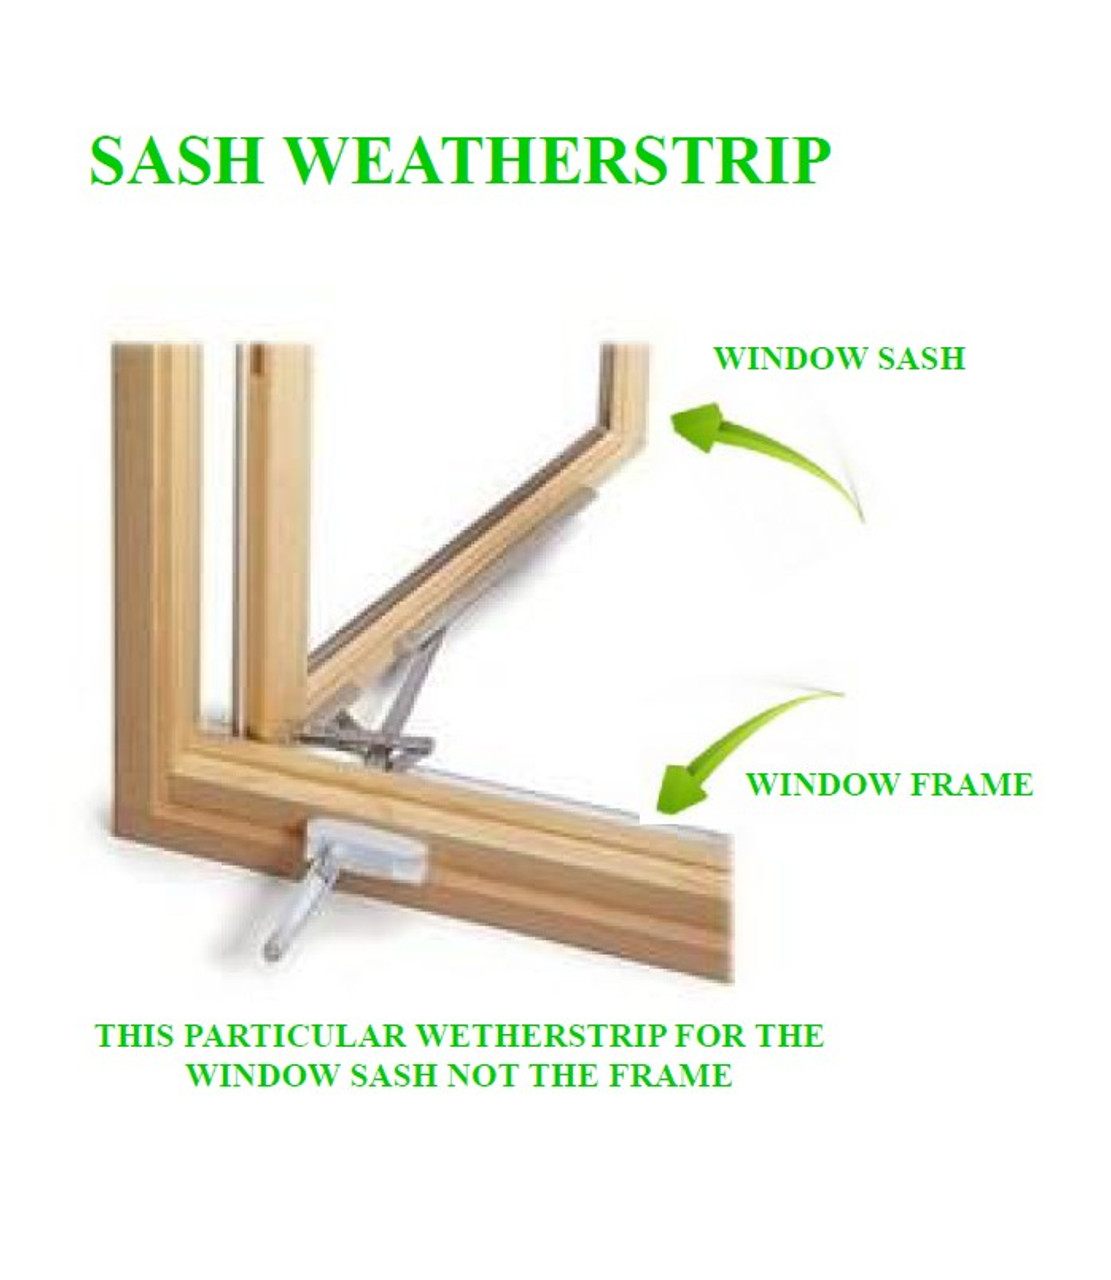 W-STRIP KIT(EACH KIT COMES WITH QTY (4) 72'' LONG PIECES) OF 100856  TOP RAIL SASH WEATHERSTRIP: FOR CLAD EXTERIOR WINDOWS UNITS FROM MARCH 2004 TO PRESENT